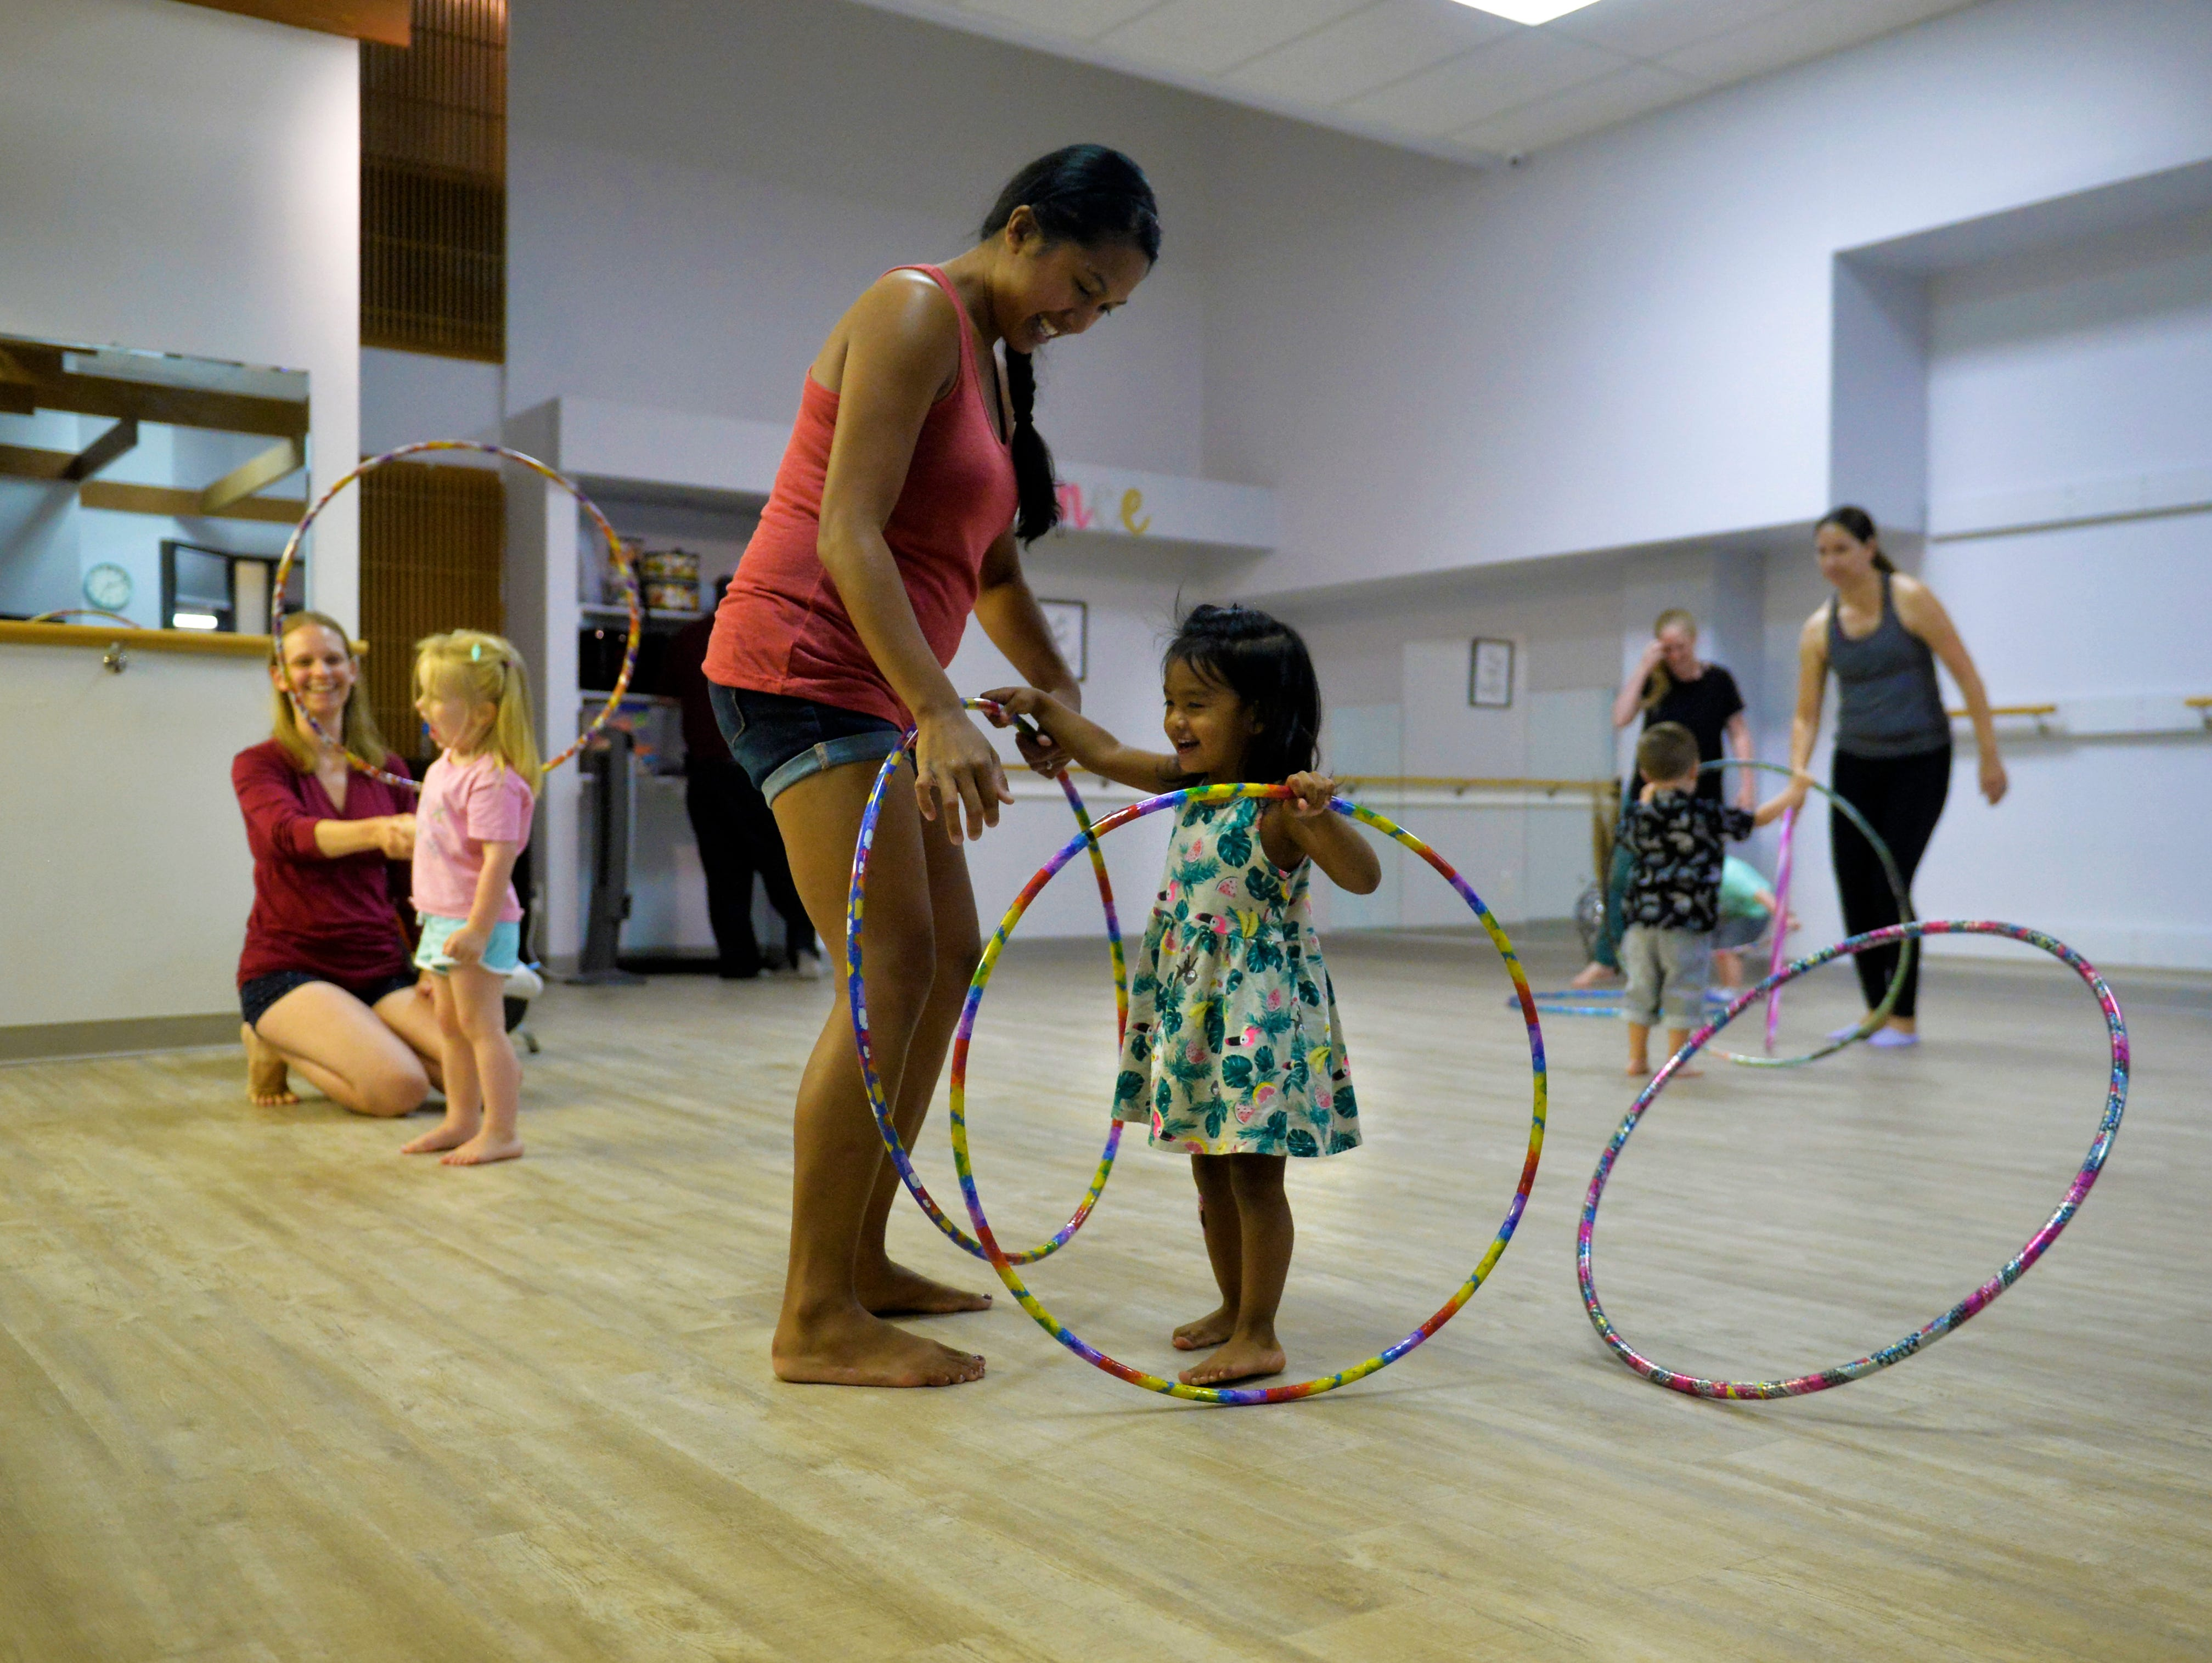 Bass Clef School of Music class for toddlers and parents recently.